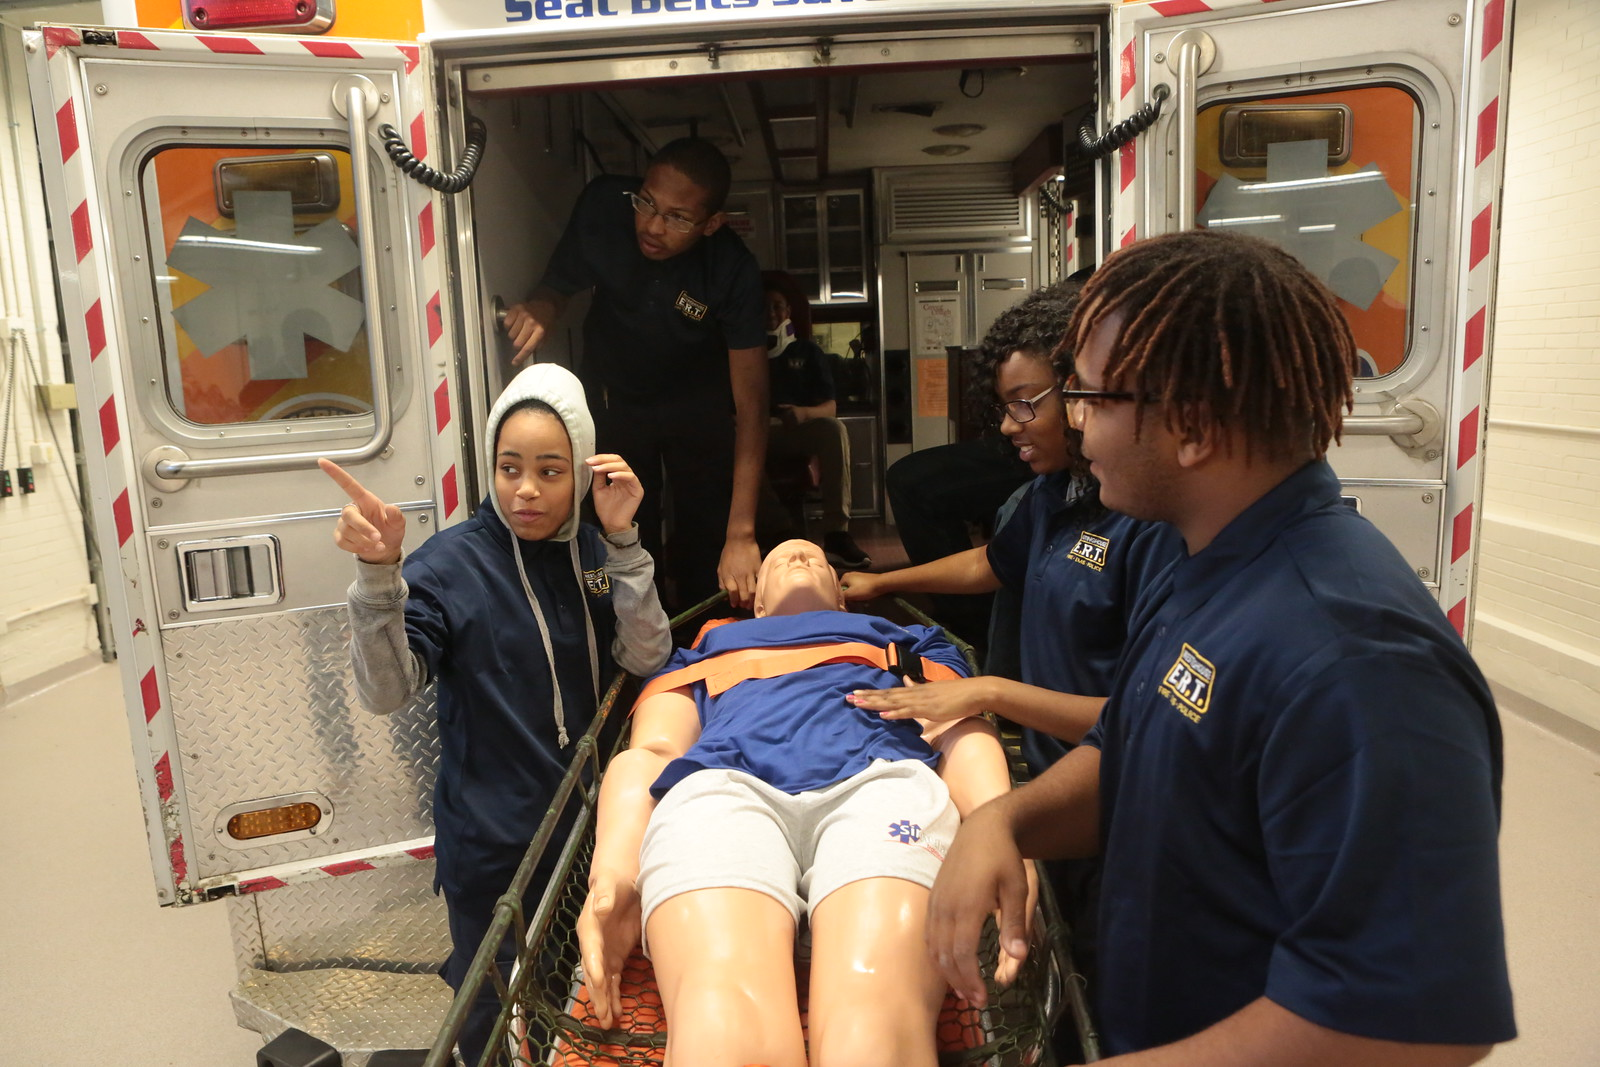 Students enrolled in the Emergency Response Technology program go through an EMT simulation session at Pittsburgh's Westinghouse Academy. (Photo by Brian Cook/PublicSource)